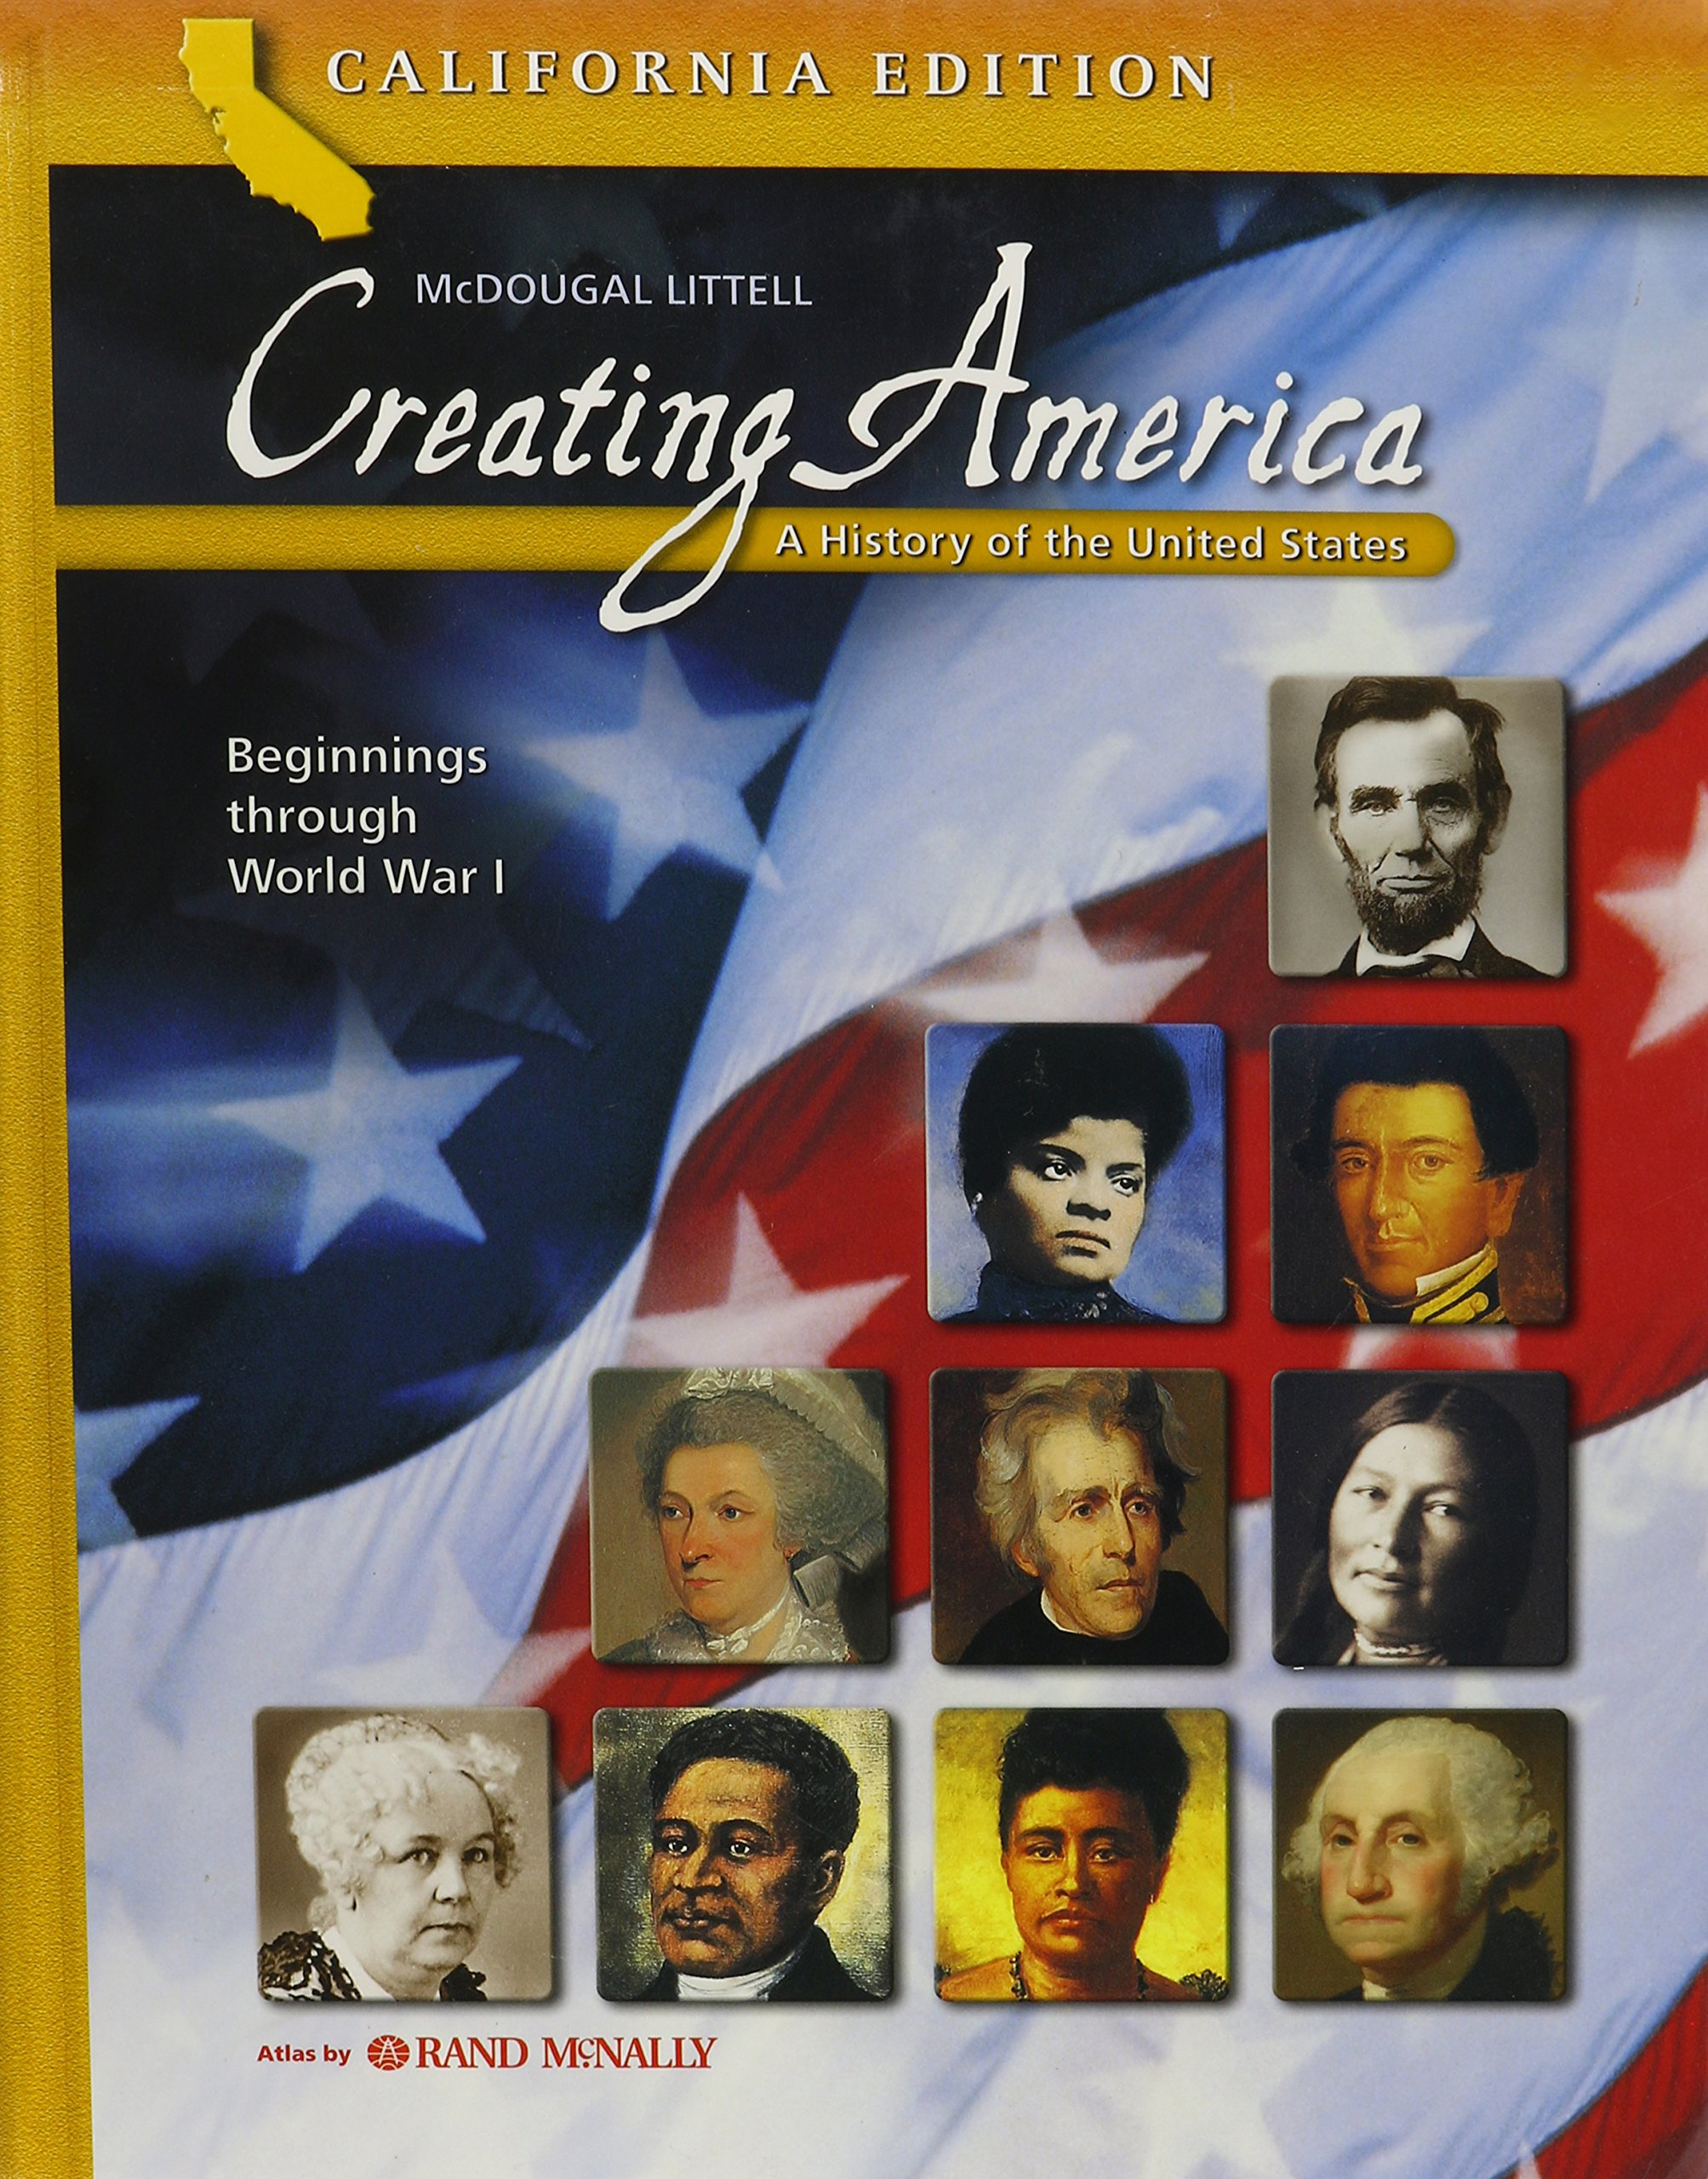 Creating America - California Student Edition: A History of the United States (Beginnings through World War l) by McDougal Littel (Image #1)